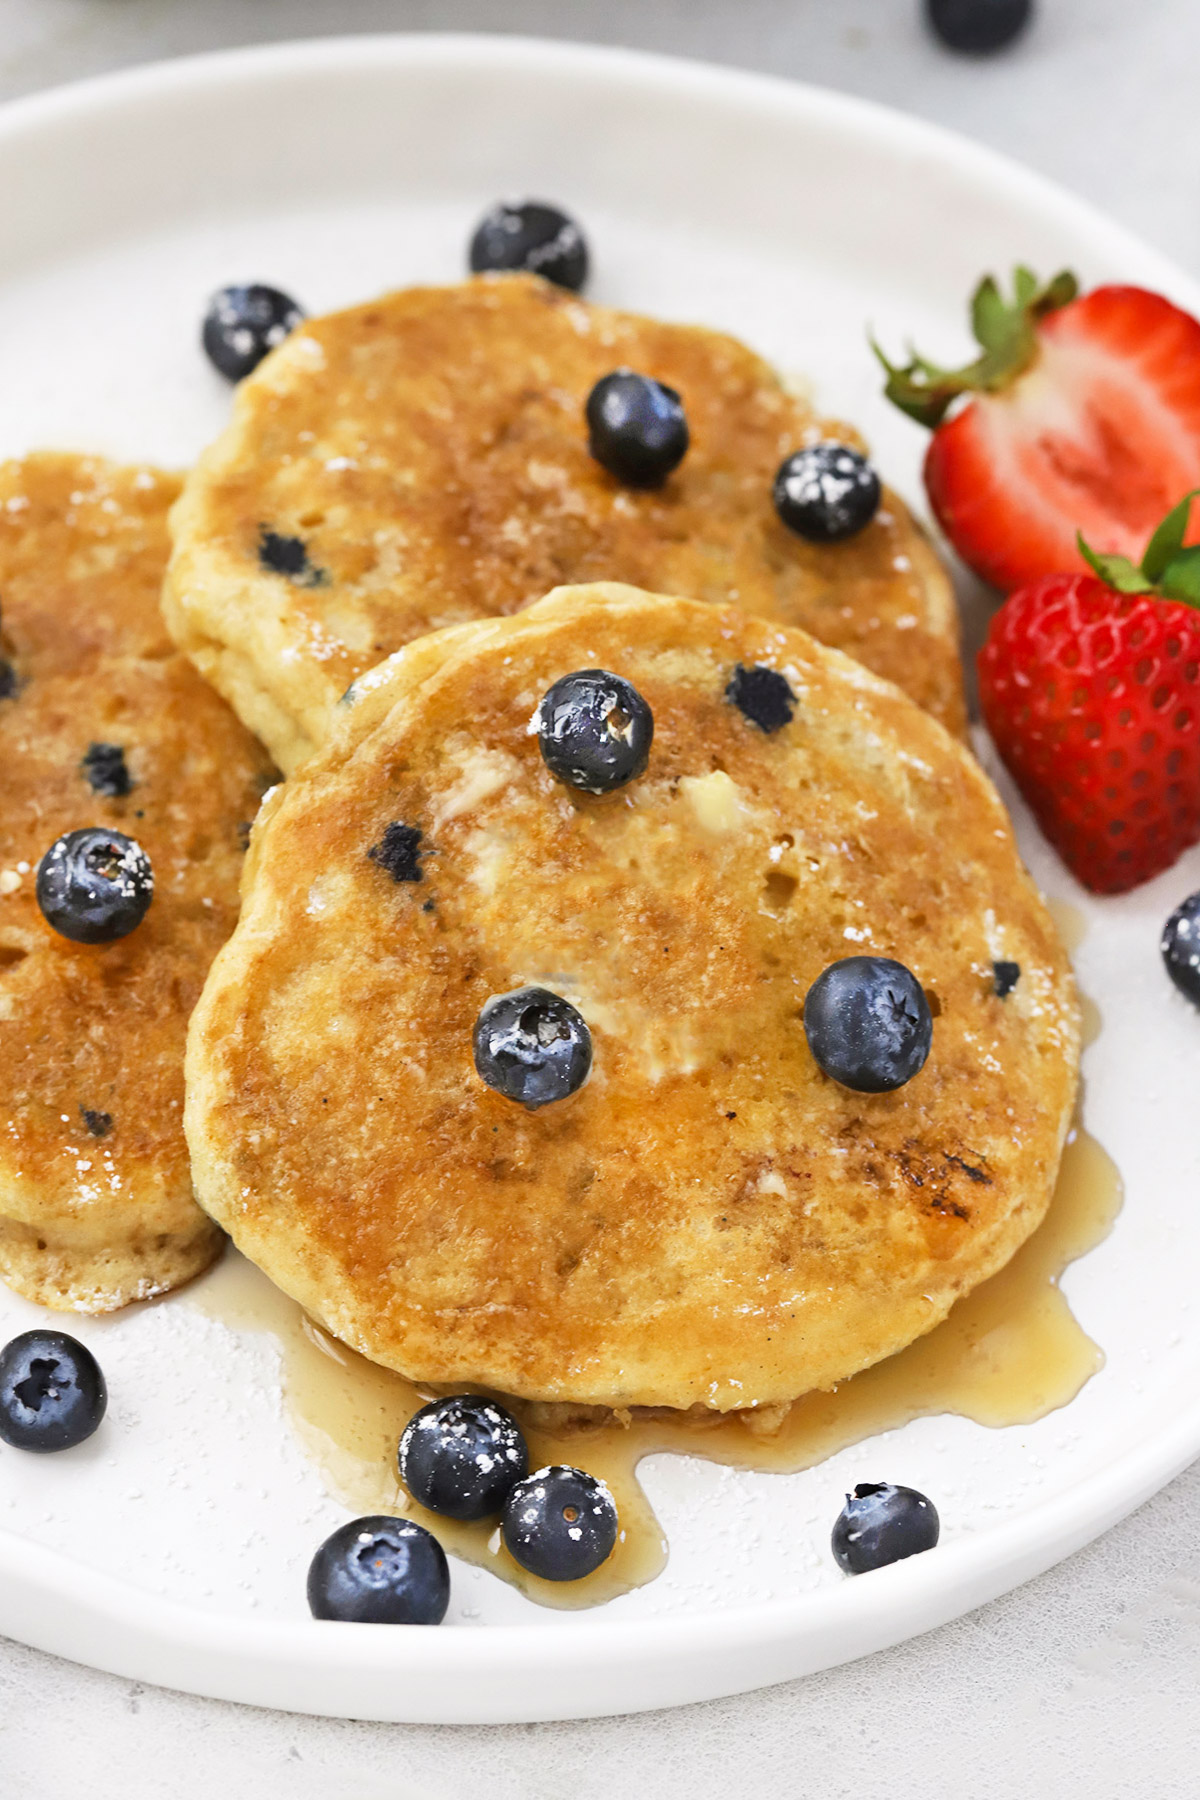 Front view of 3 fluffy gluten-free blueberry pancakes on a white plate drizzled with syrup